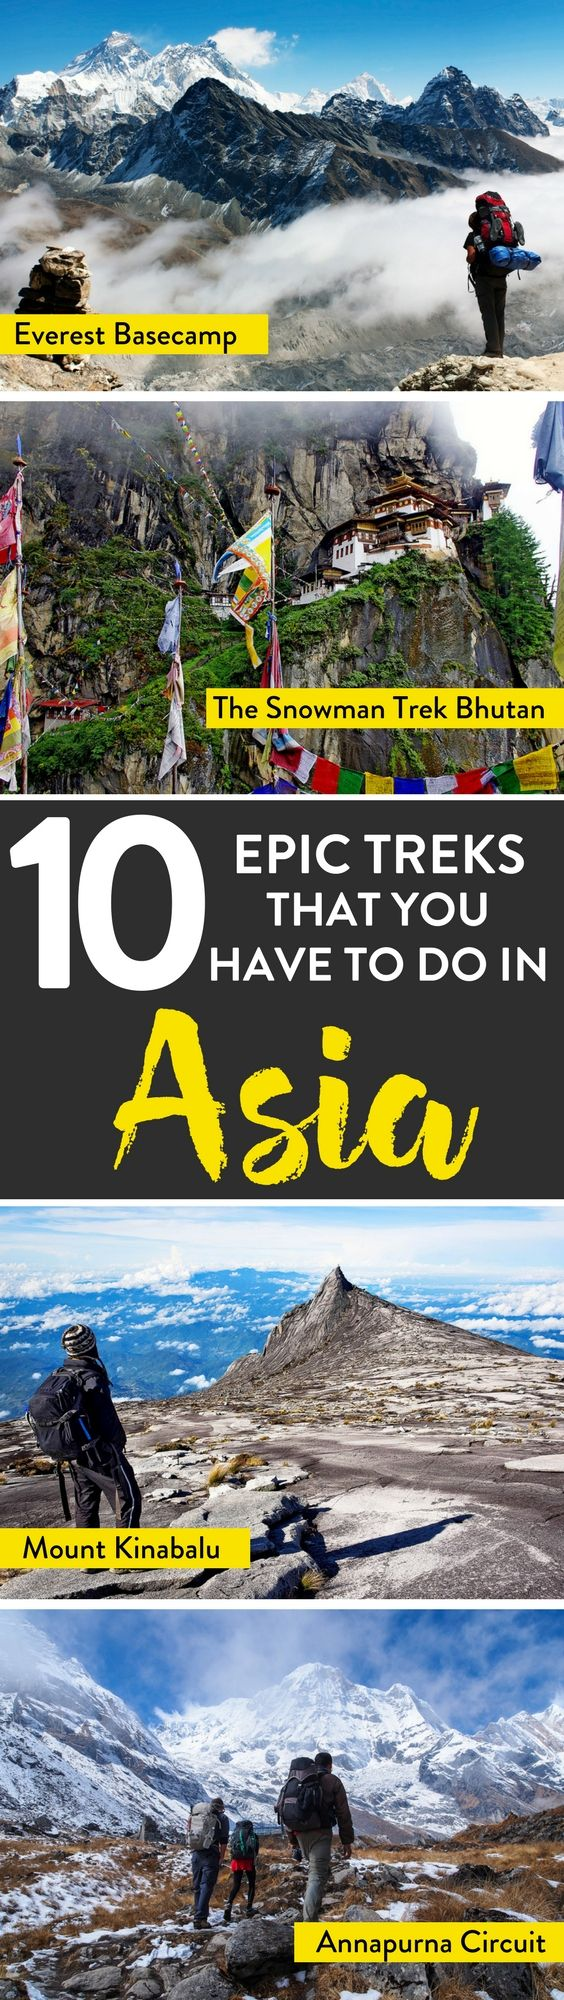 Asia Travel | Looking for the best trekking in Asia? Here's our list of epic treks to take on for avid climbers!